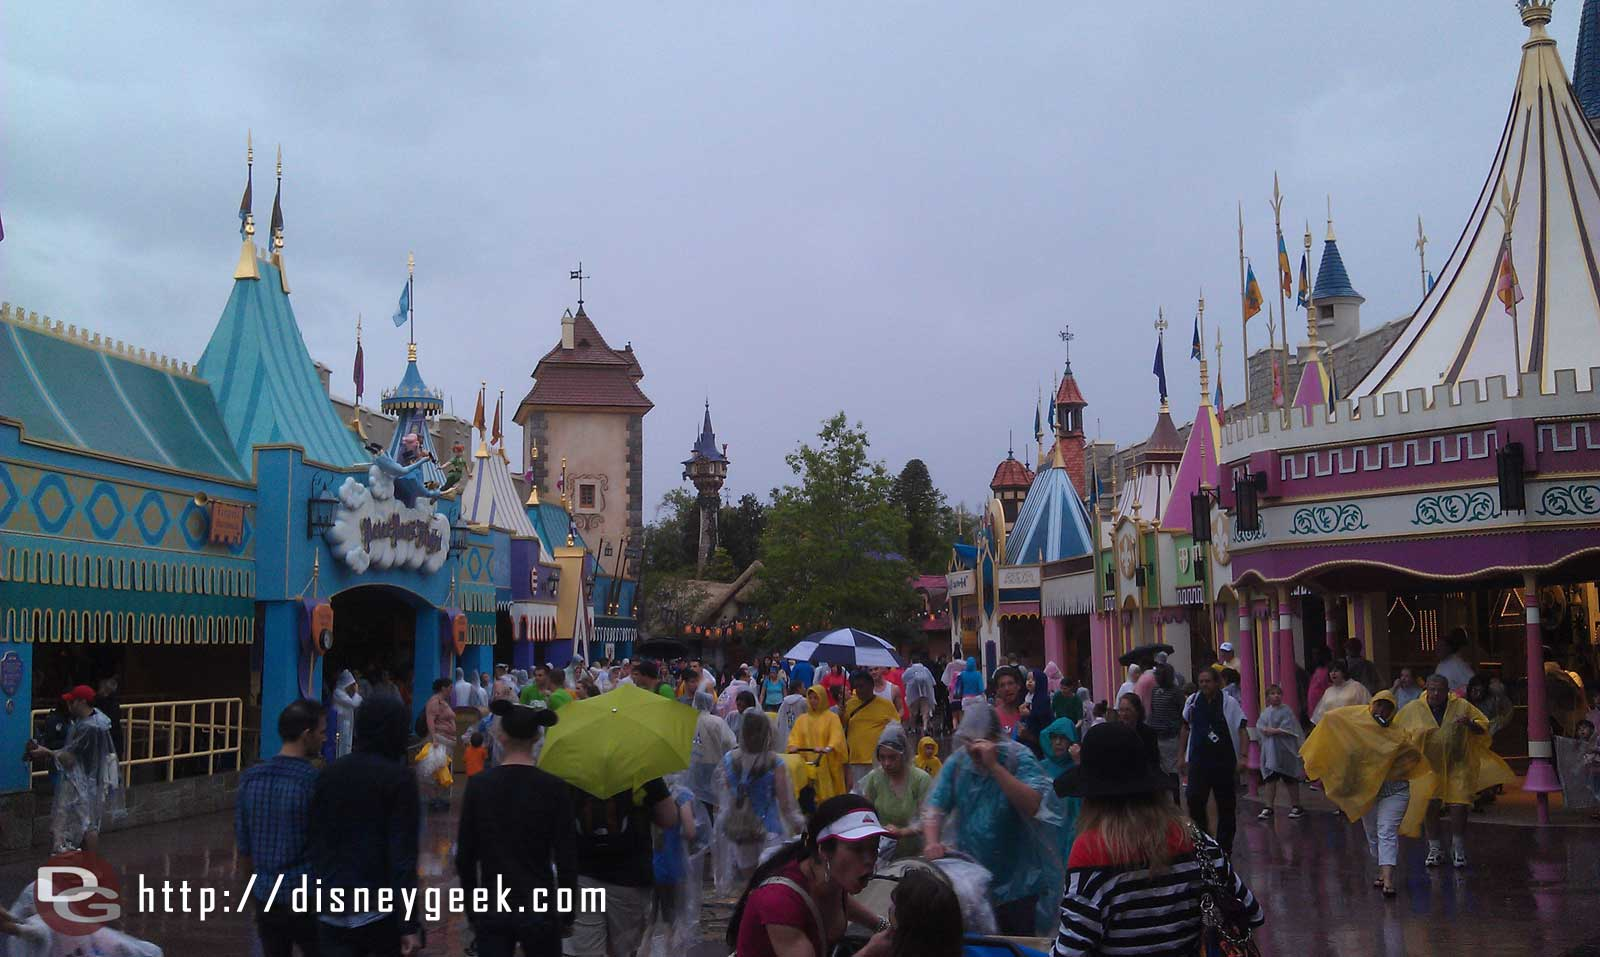 A lot of guests and activity in the original Fantasyland too